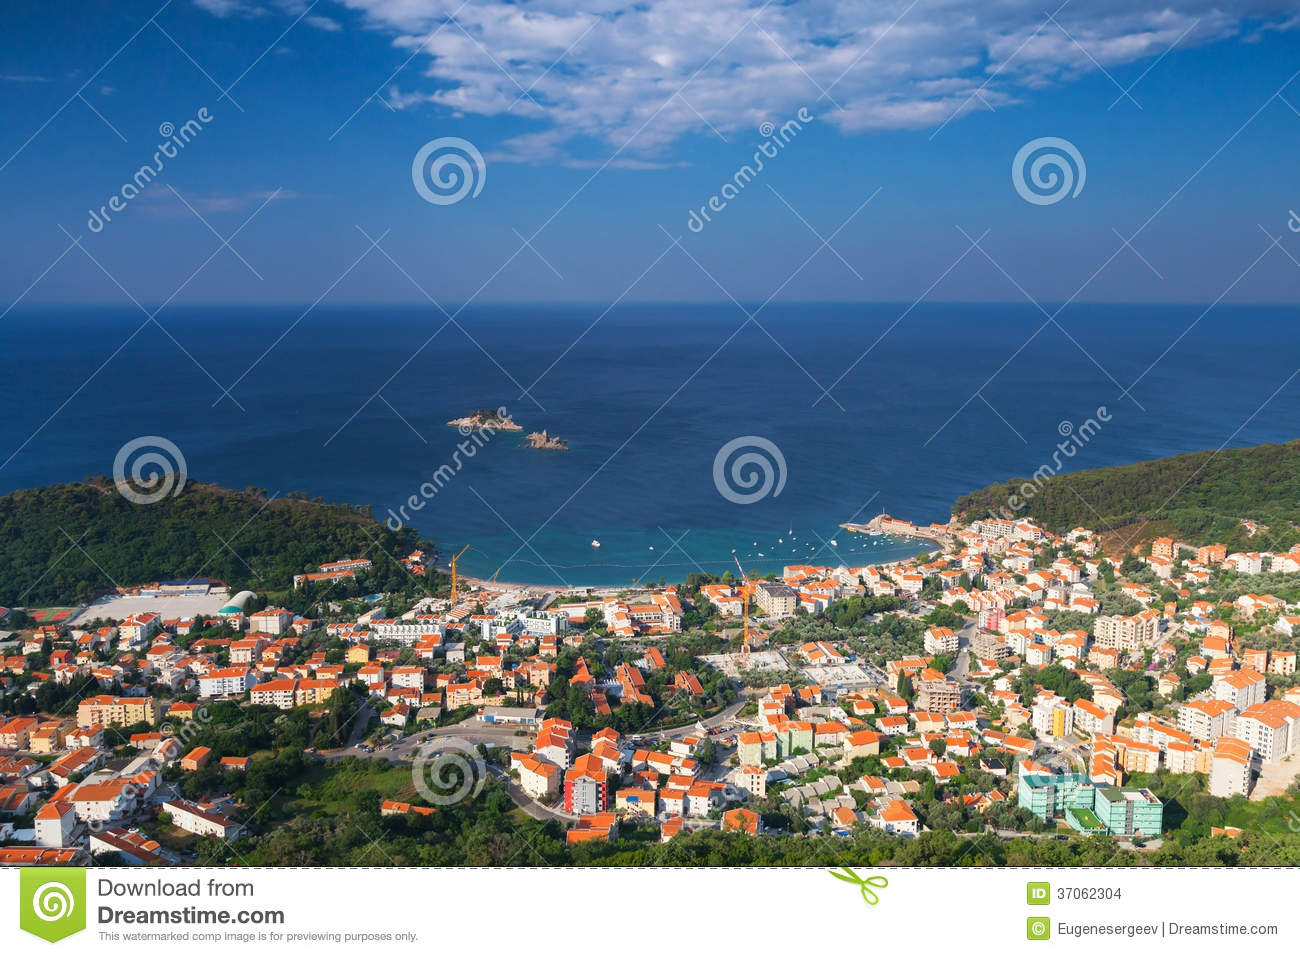 Paysage de ville de petrovac mont n gro photo stock for Paysage de ville